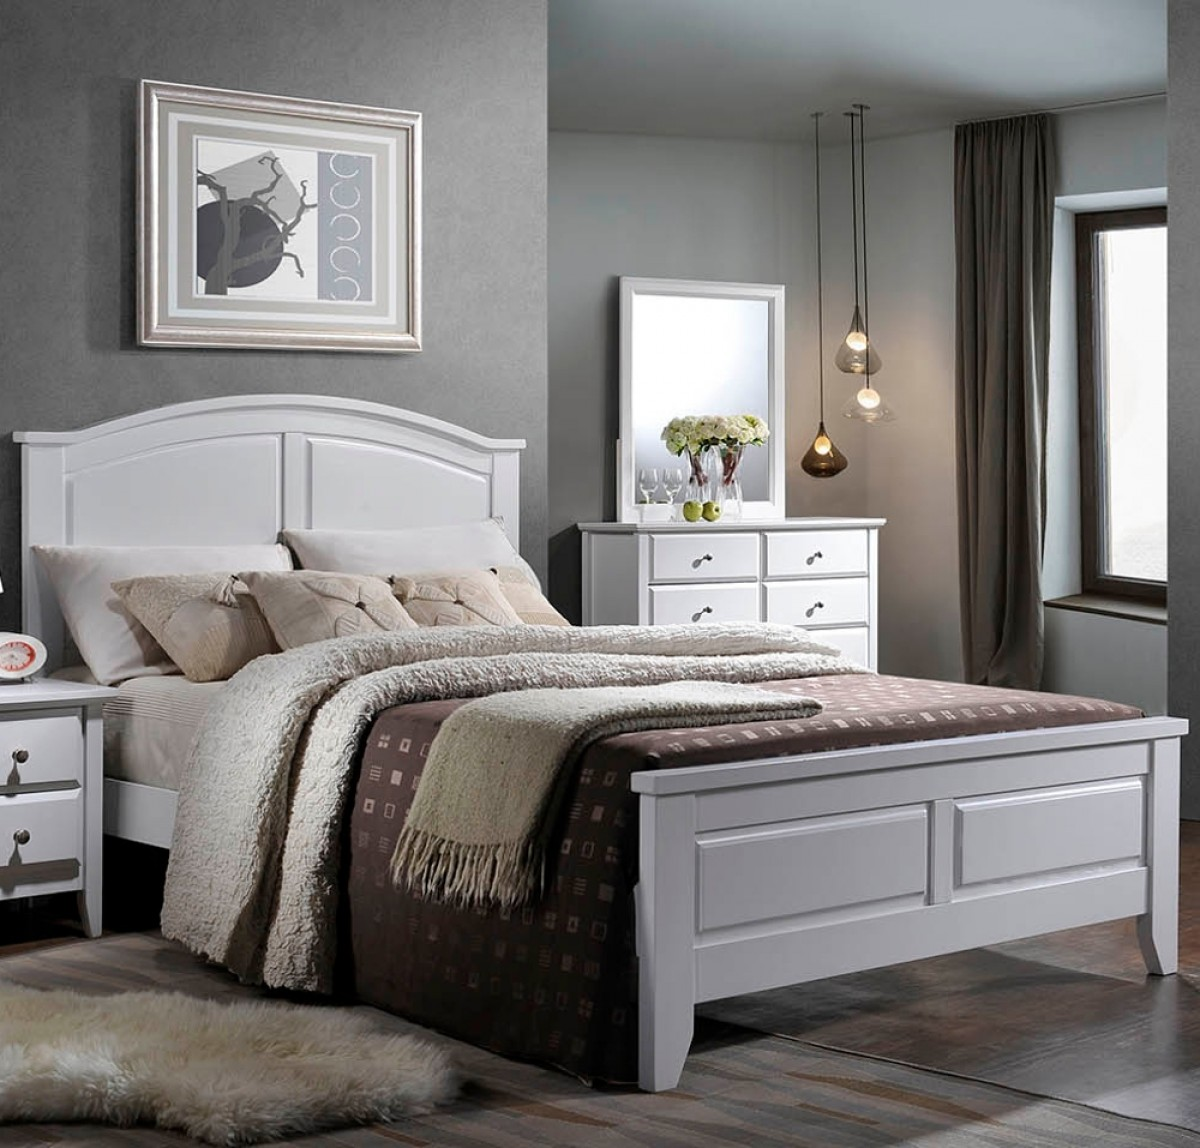 Parma White Wooden Bed